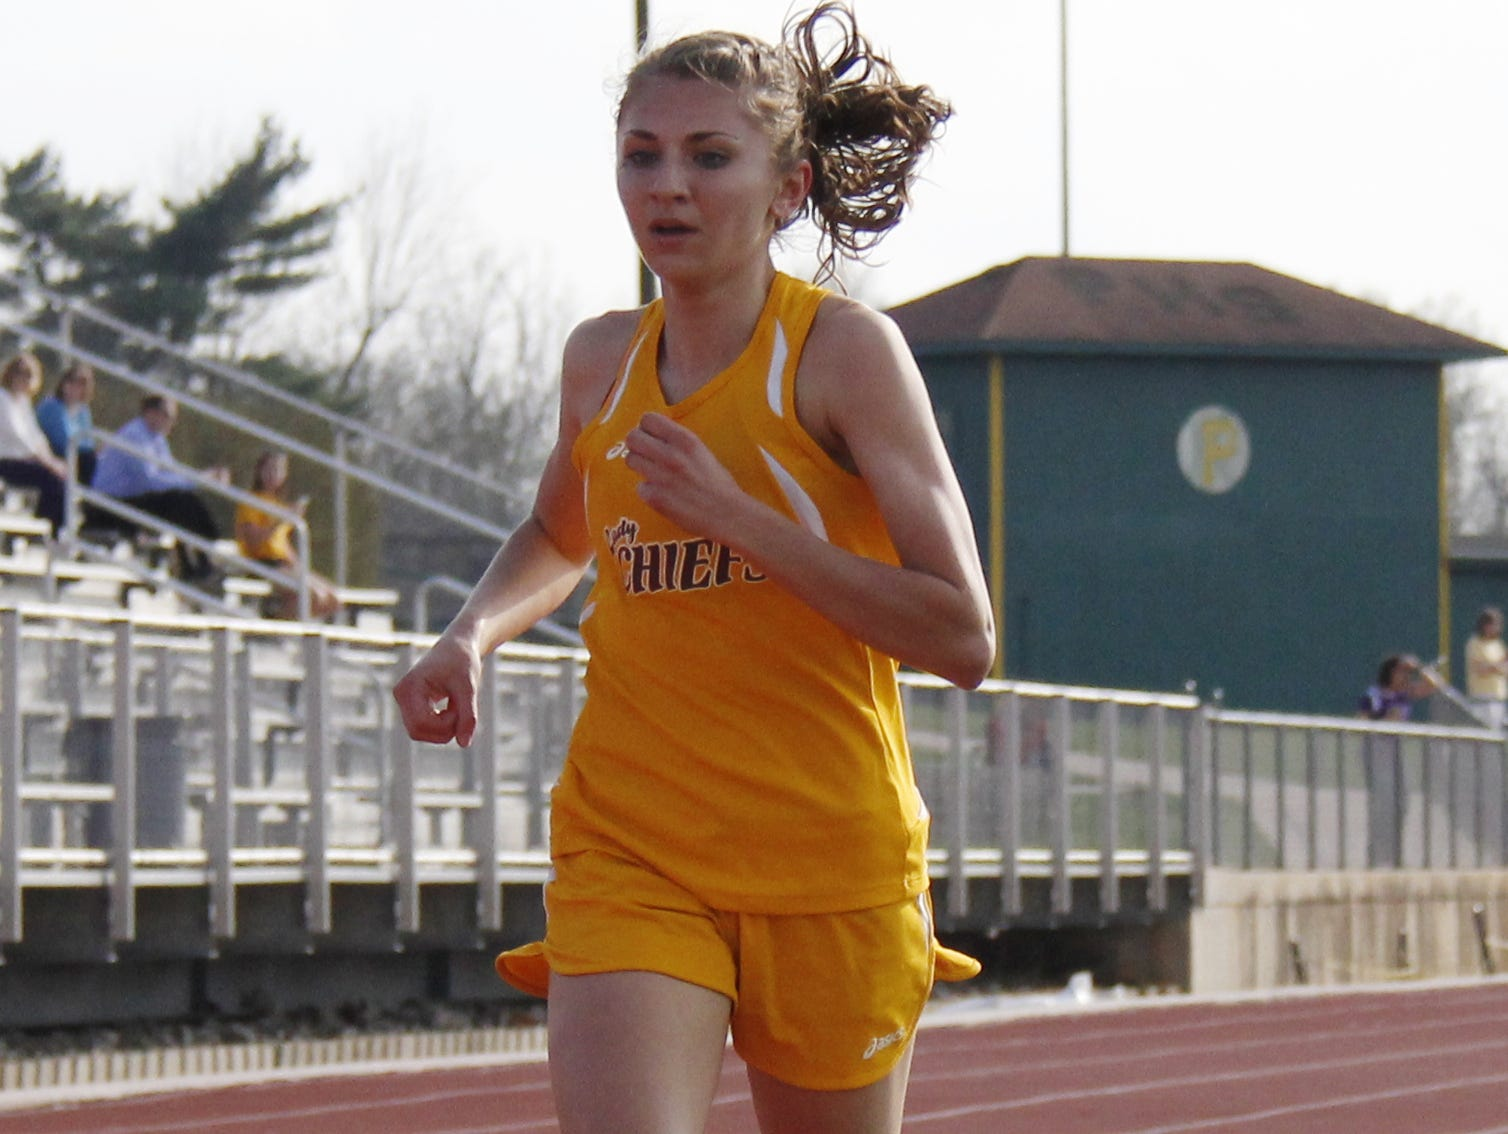 Kickapoo junior Allison Bailey looks to return to the high school track and field state championships in the 400- and 800-meter races after earning all state status in both events in 2014.